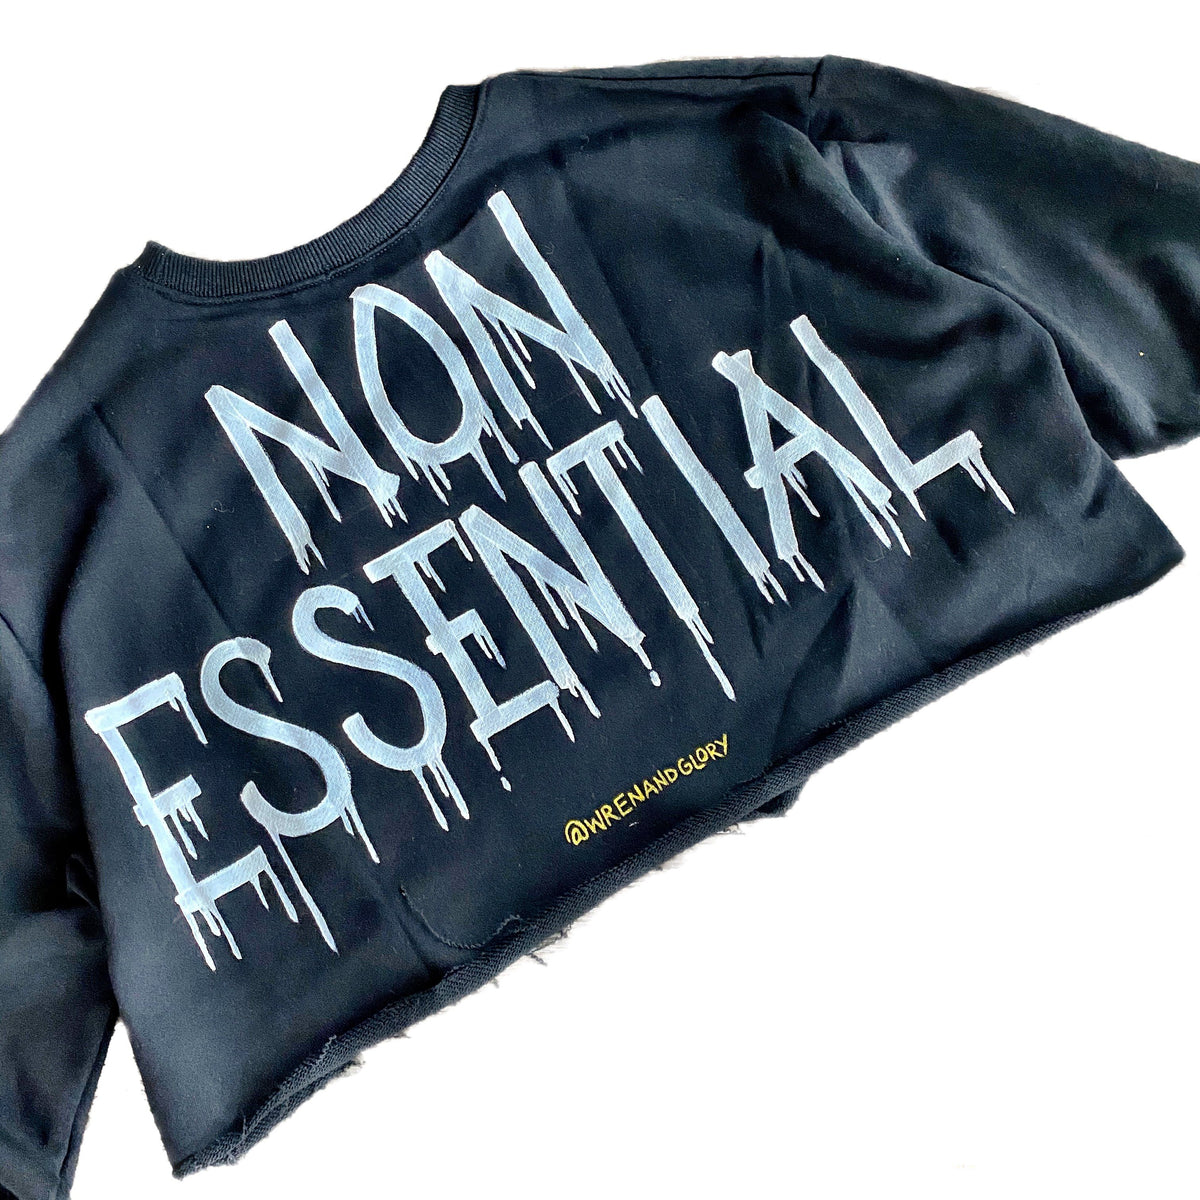 'NON ESSENTIALS' PAINTED SWEATSHIRT